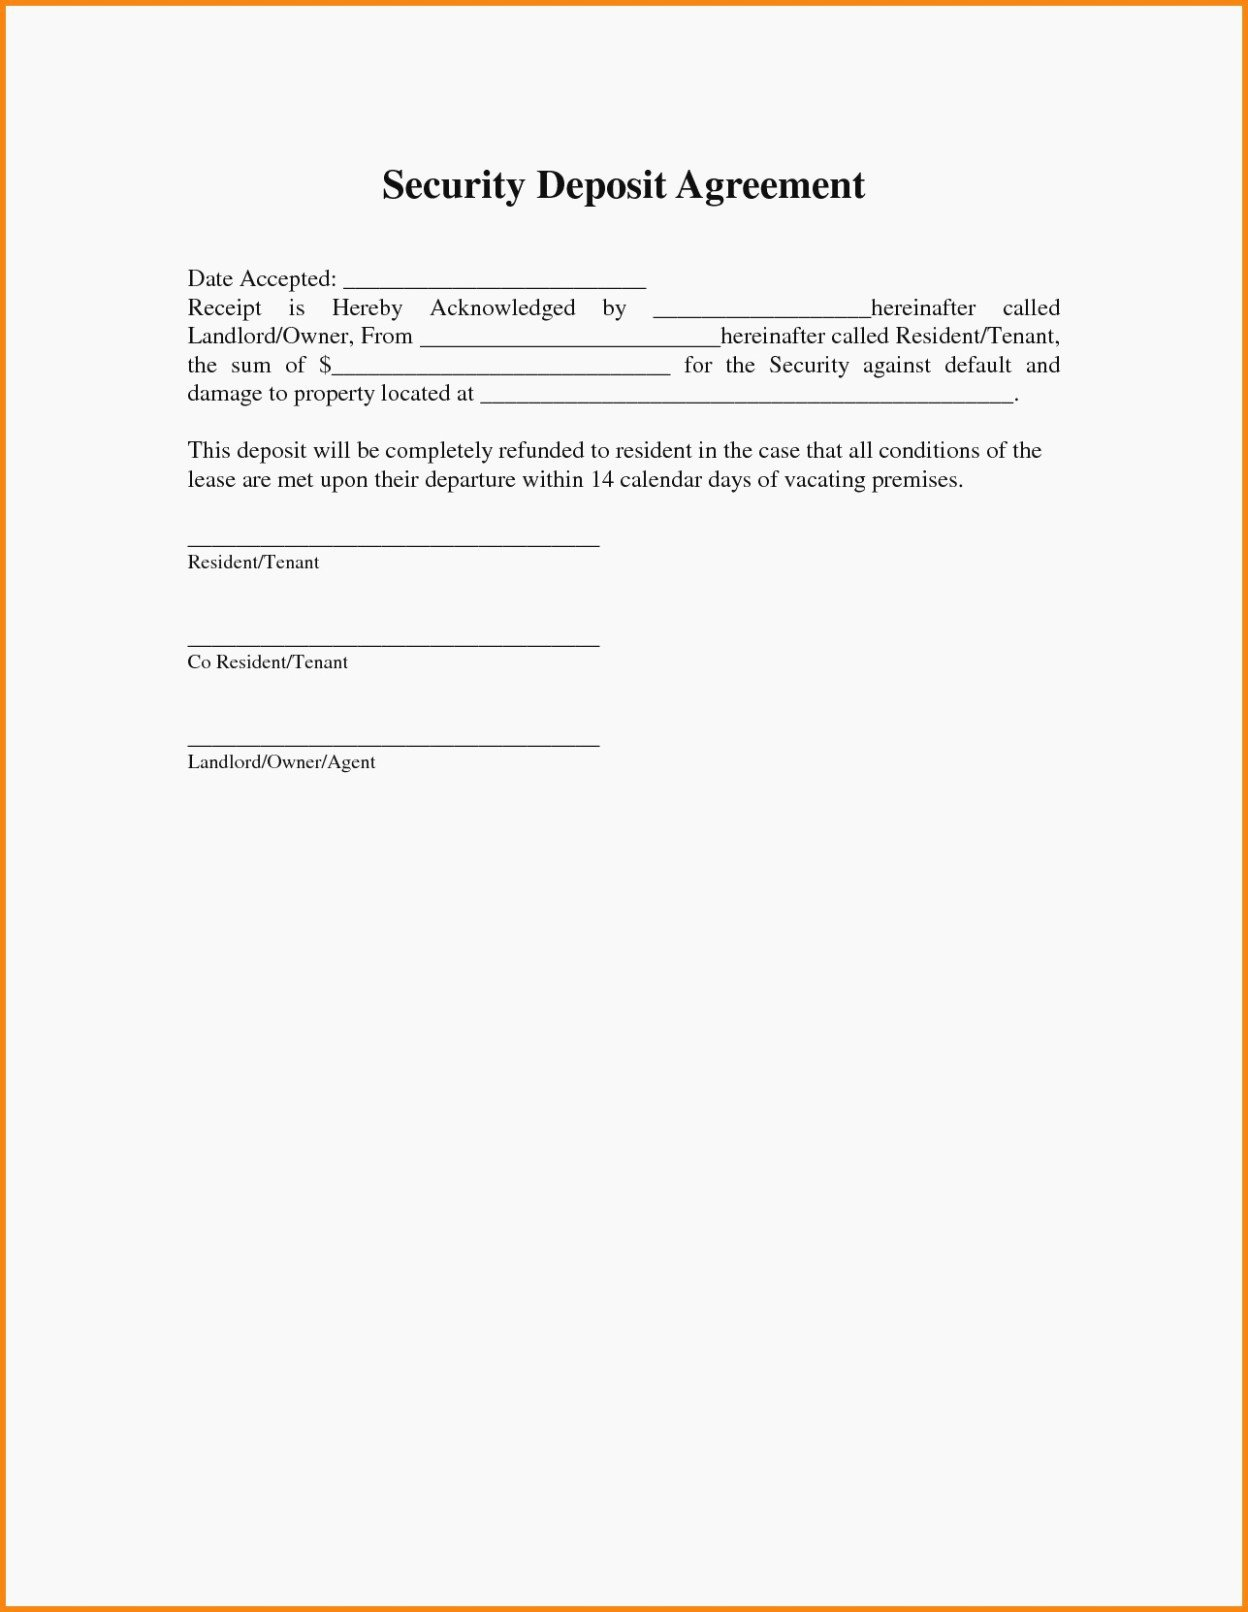 Security Deposit Return form Template Fresh the History Sample